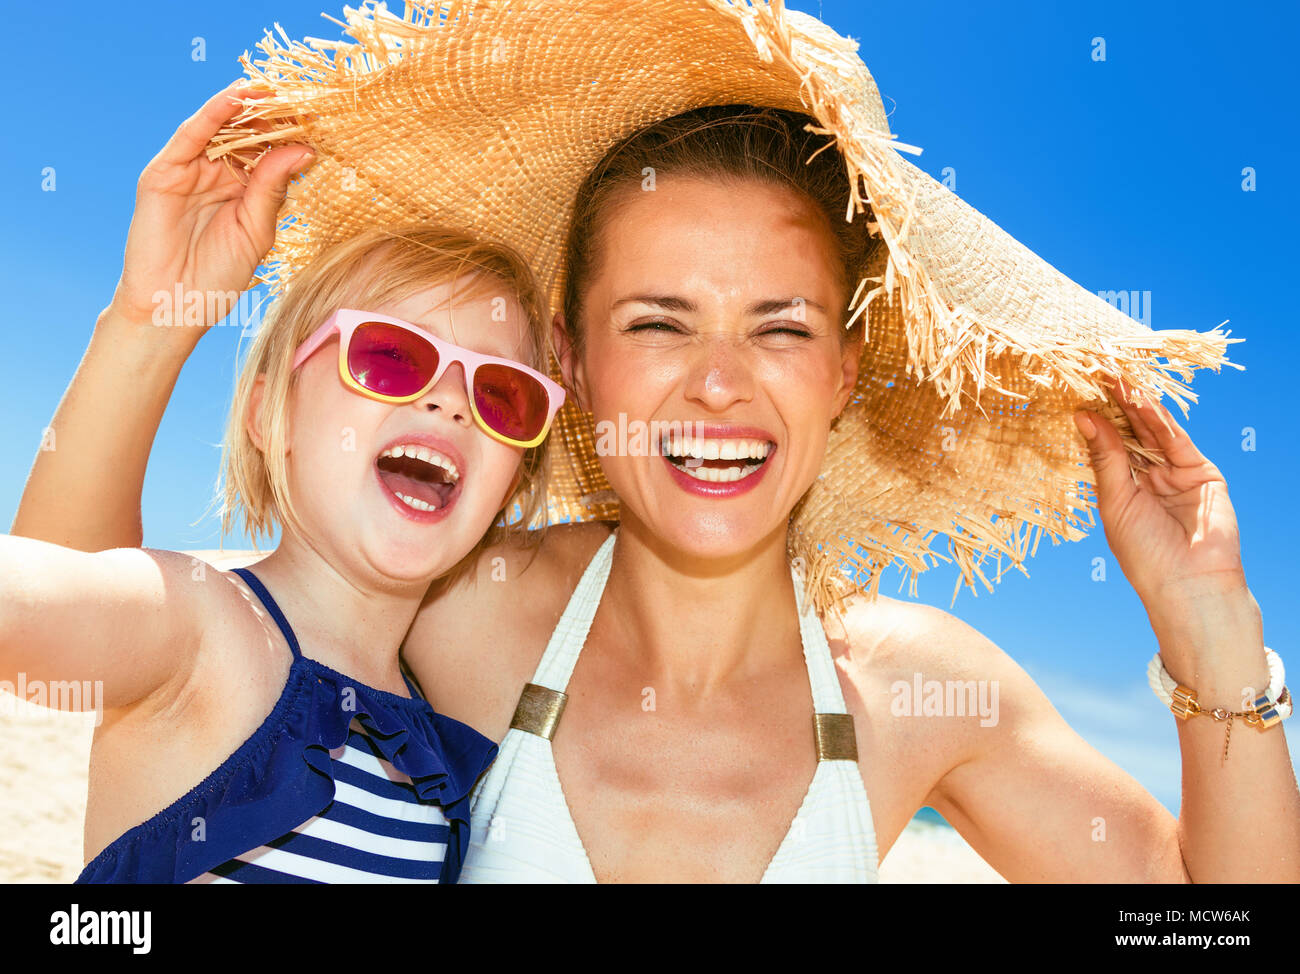 Family fun on white sand. happy modern mother and child in swimwear on the seacoast taking selfie - Stock Image